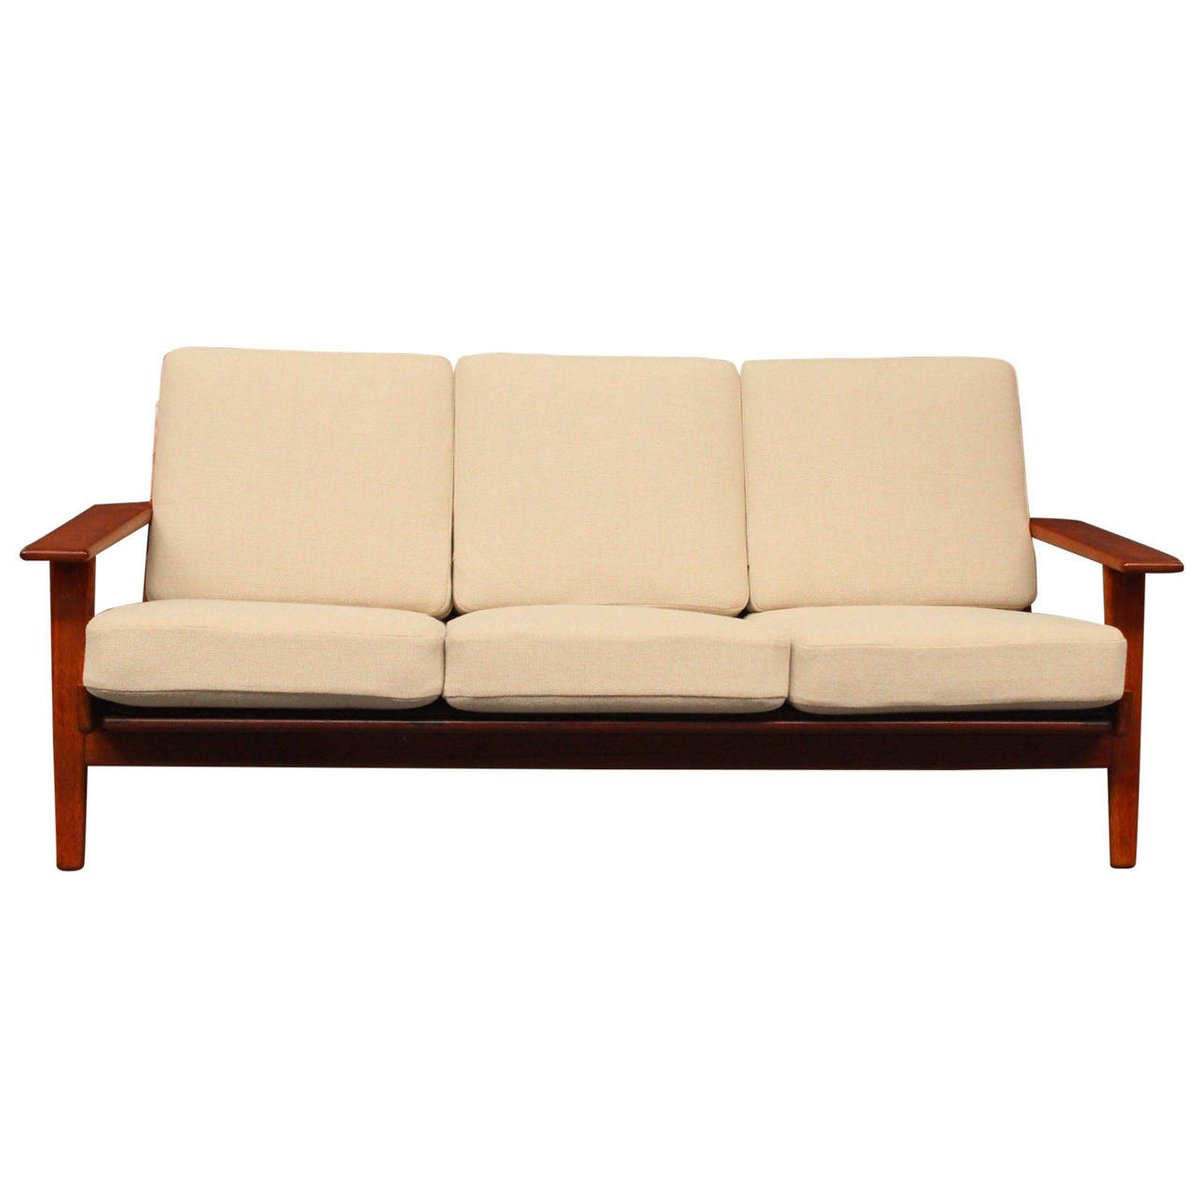 ge290 teak sofa by hans j wegner for getama 1960s for sale at pamono. Black Bedroom Furniture Sets. Home Design Ideas